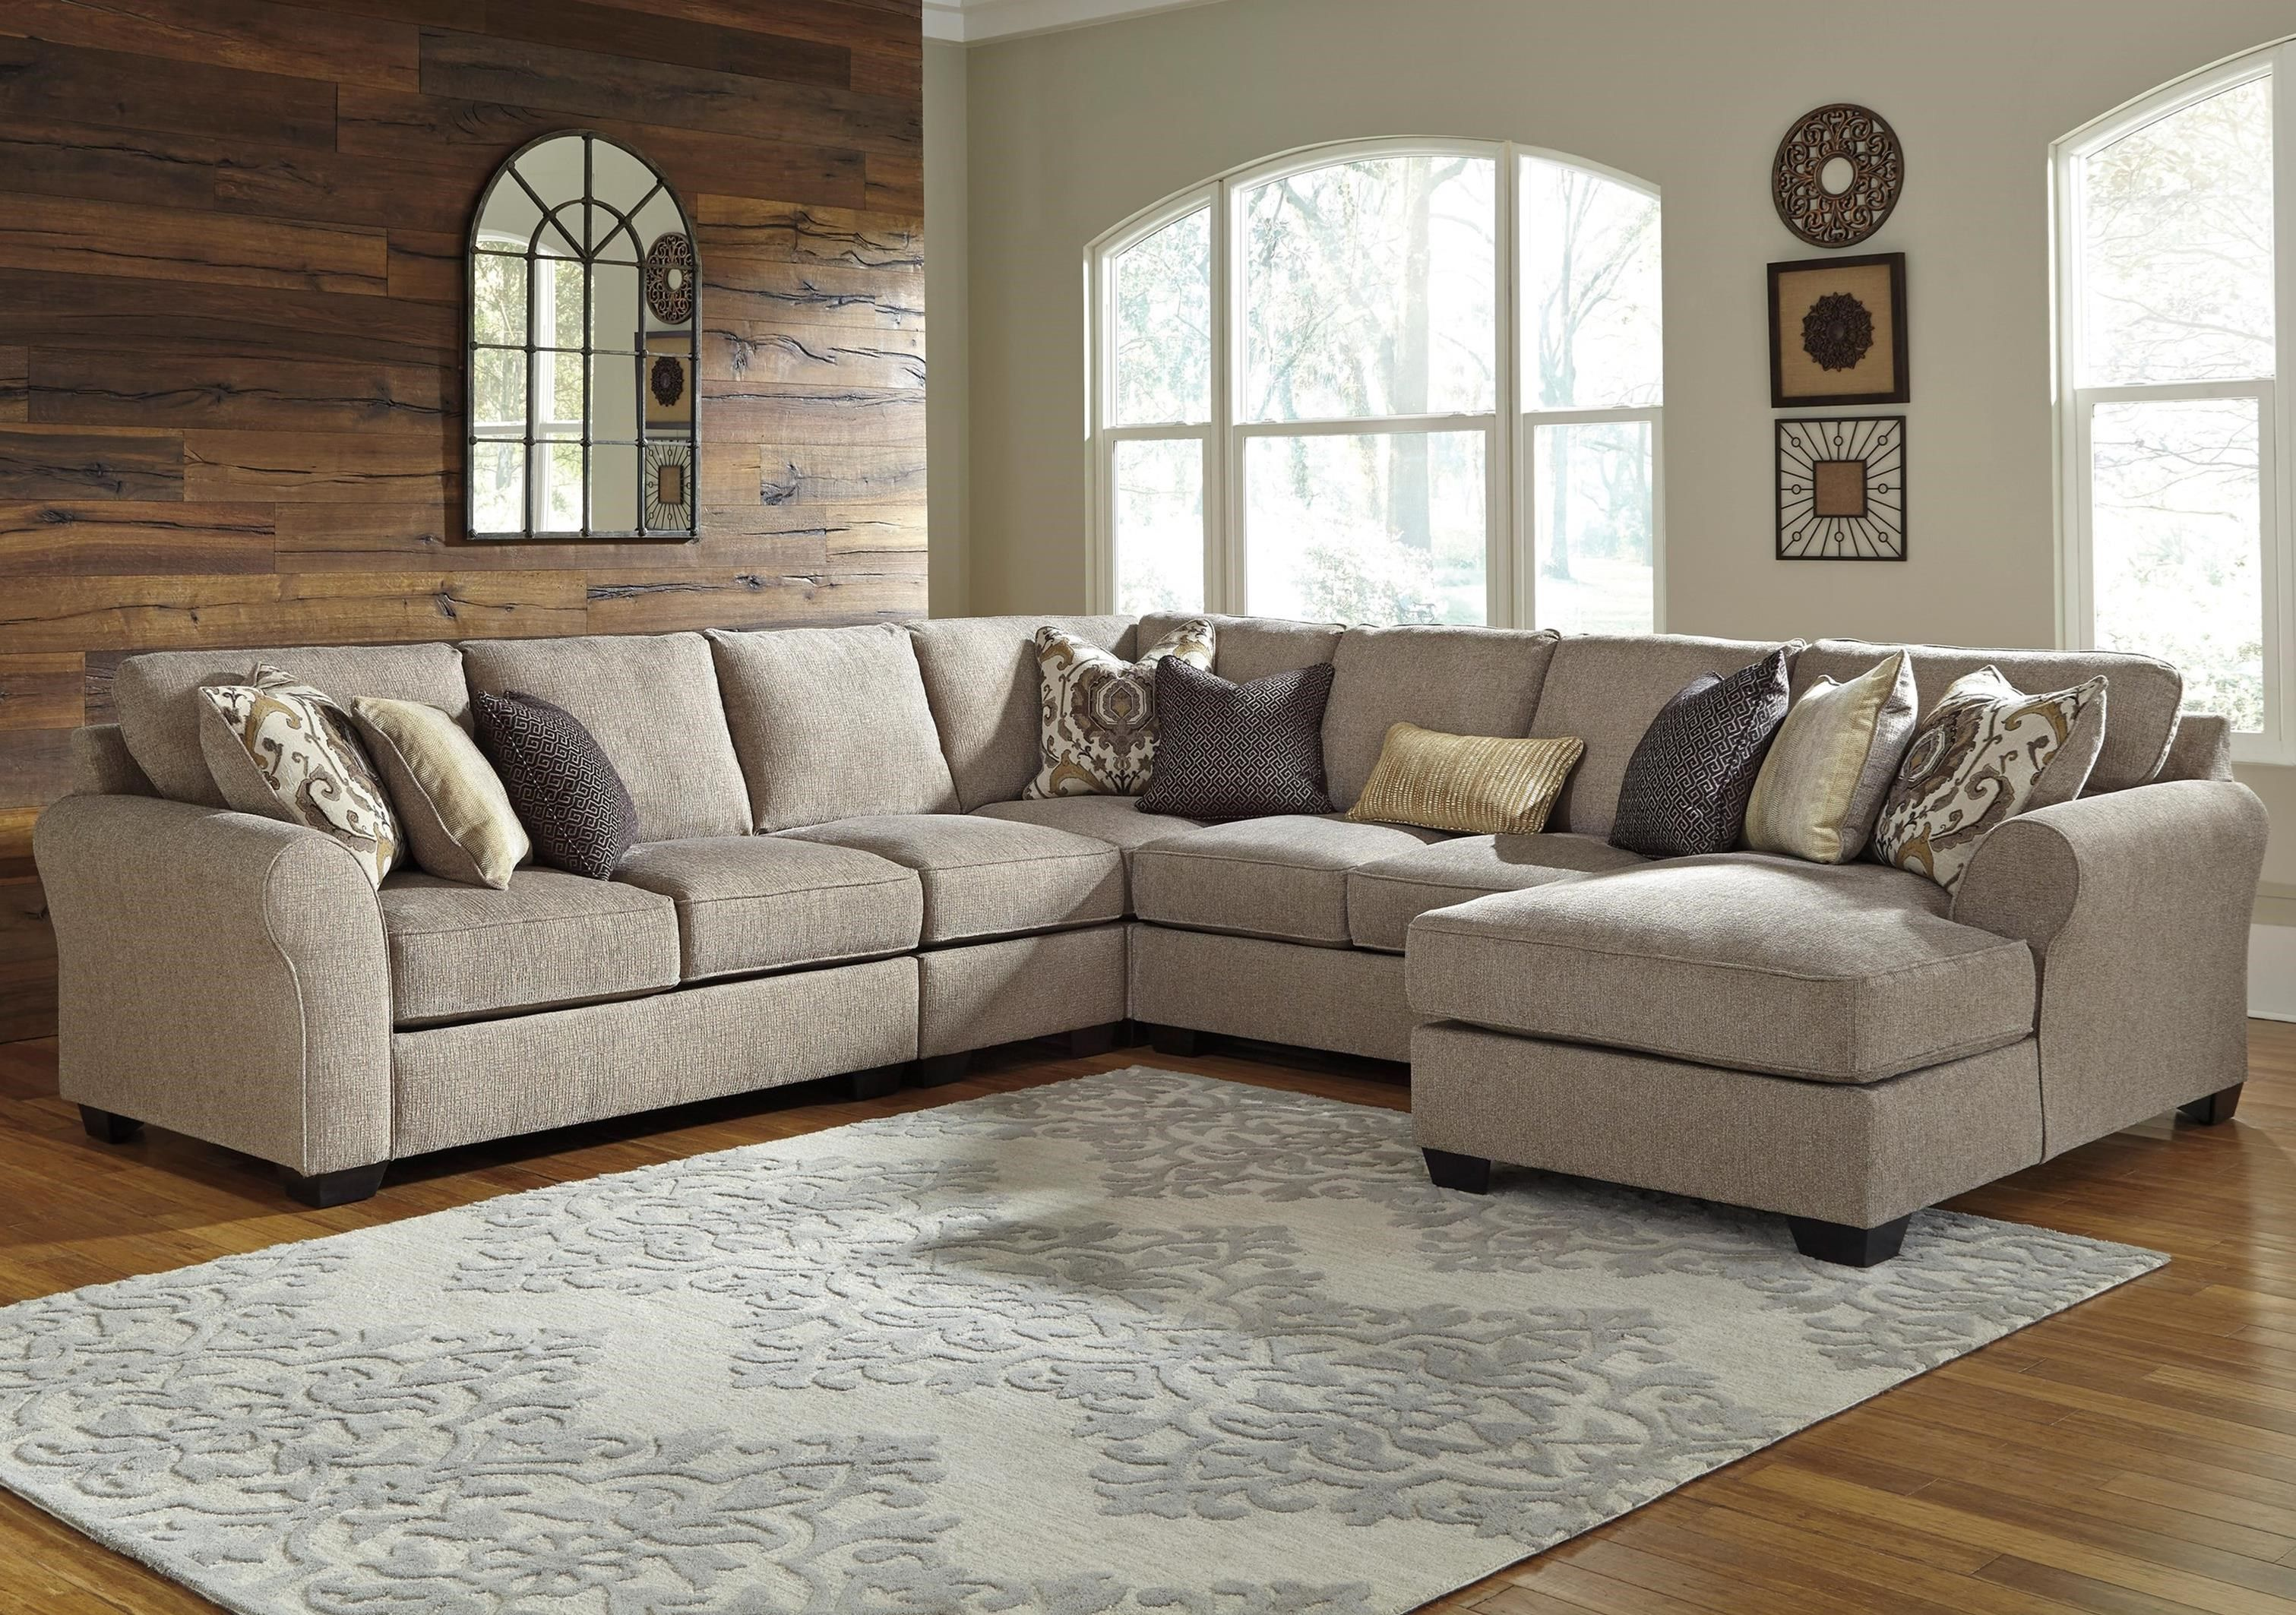 Pantomine 5 Piece Sectional With Right Chaise By Benchcraft Living Room Furniture City Furniture Sectional Sofa Couch